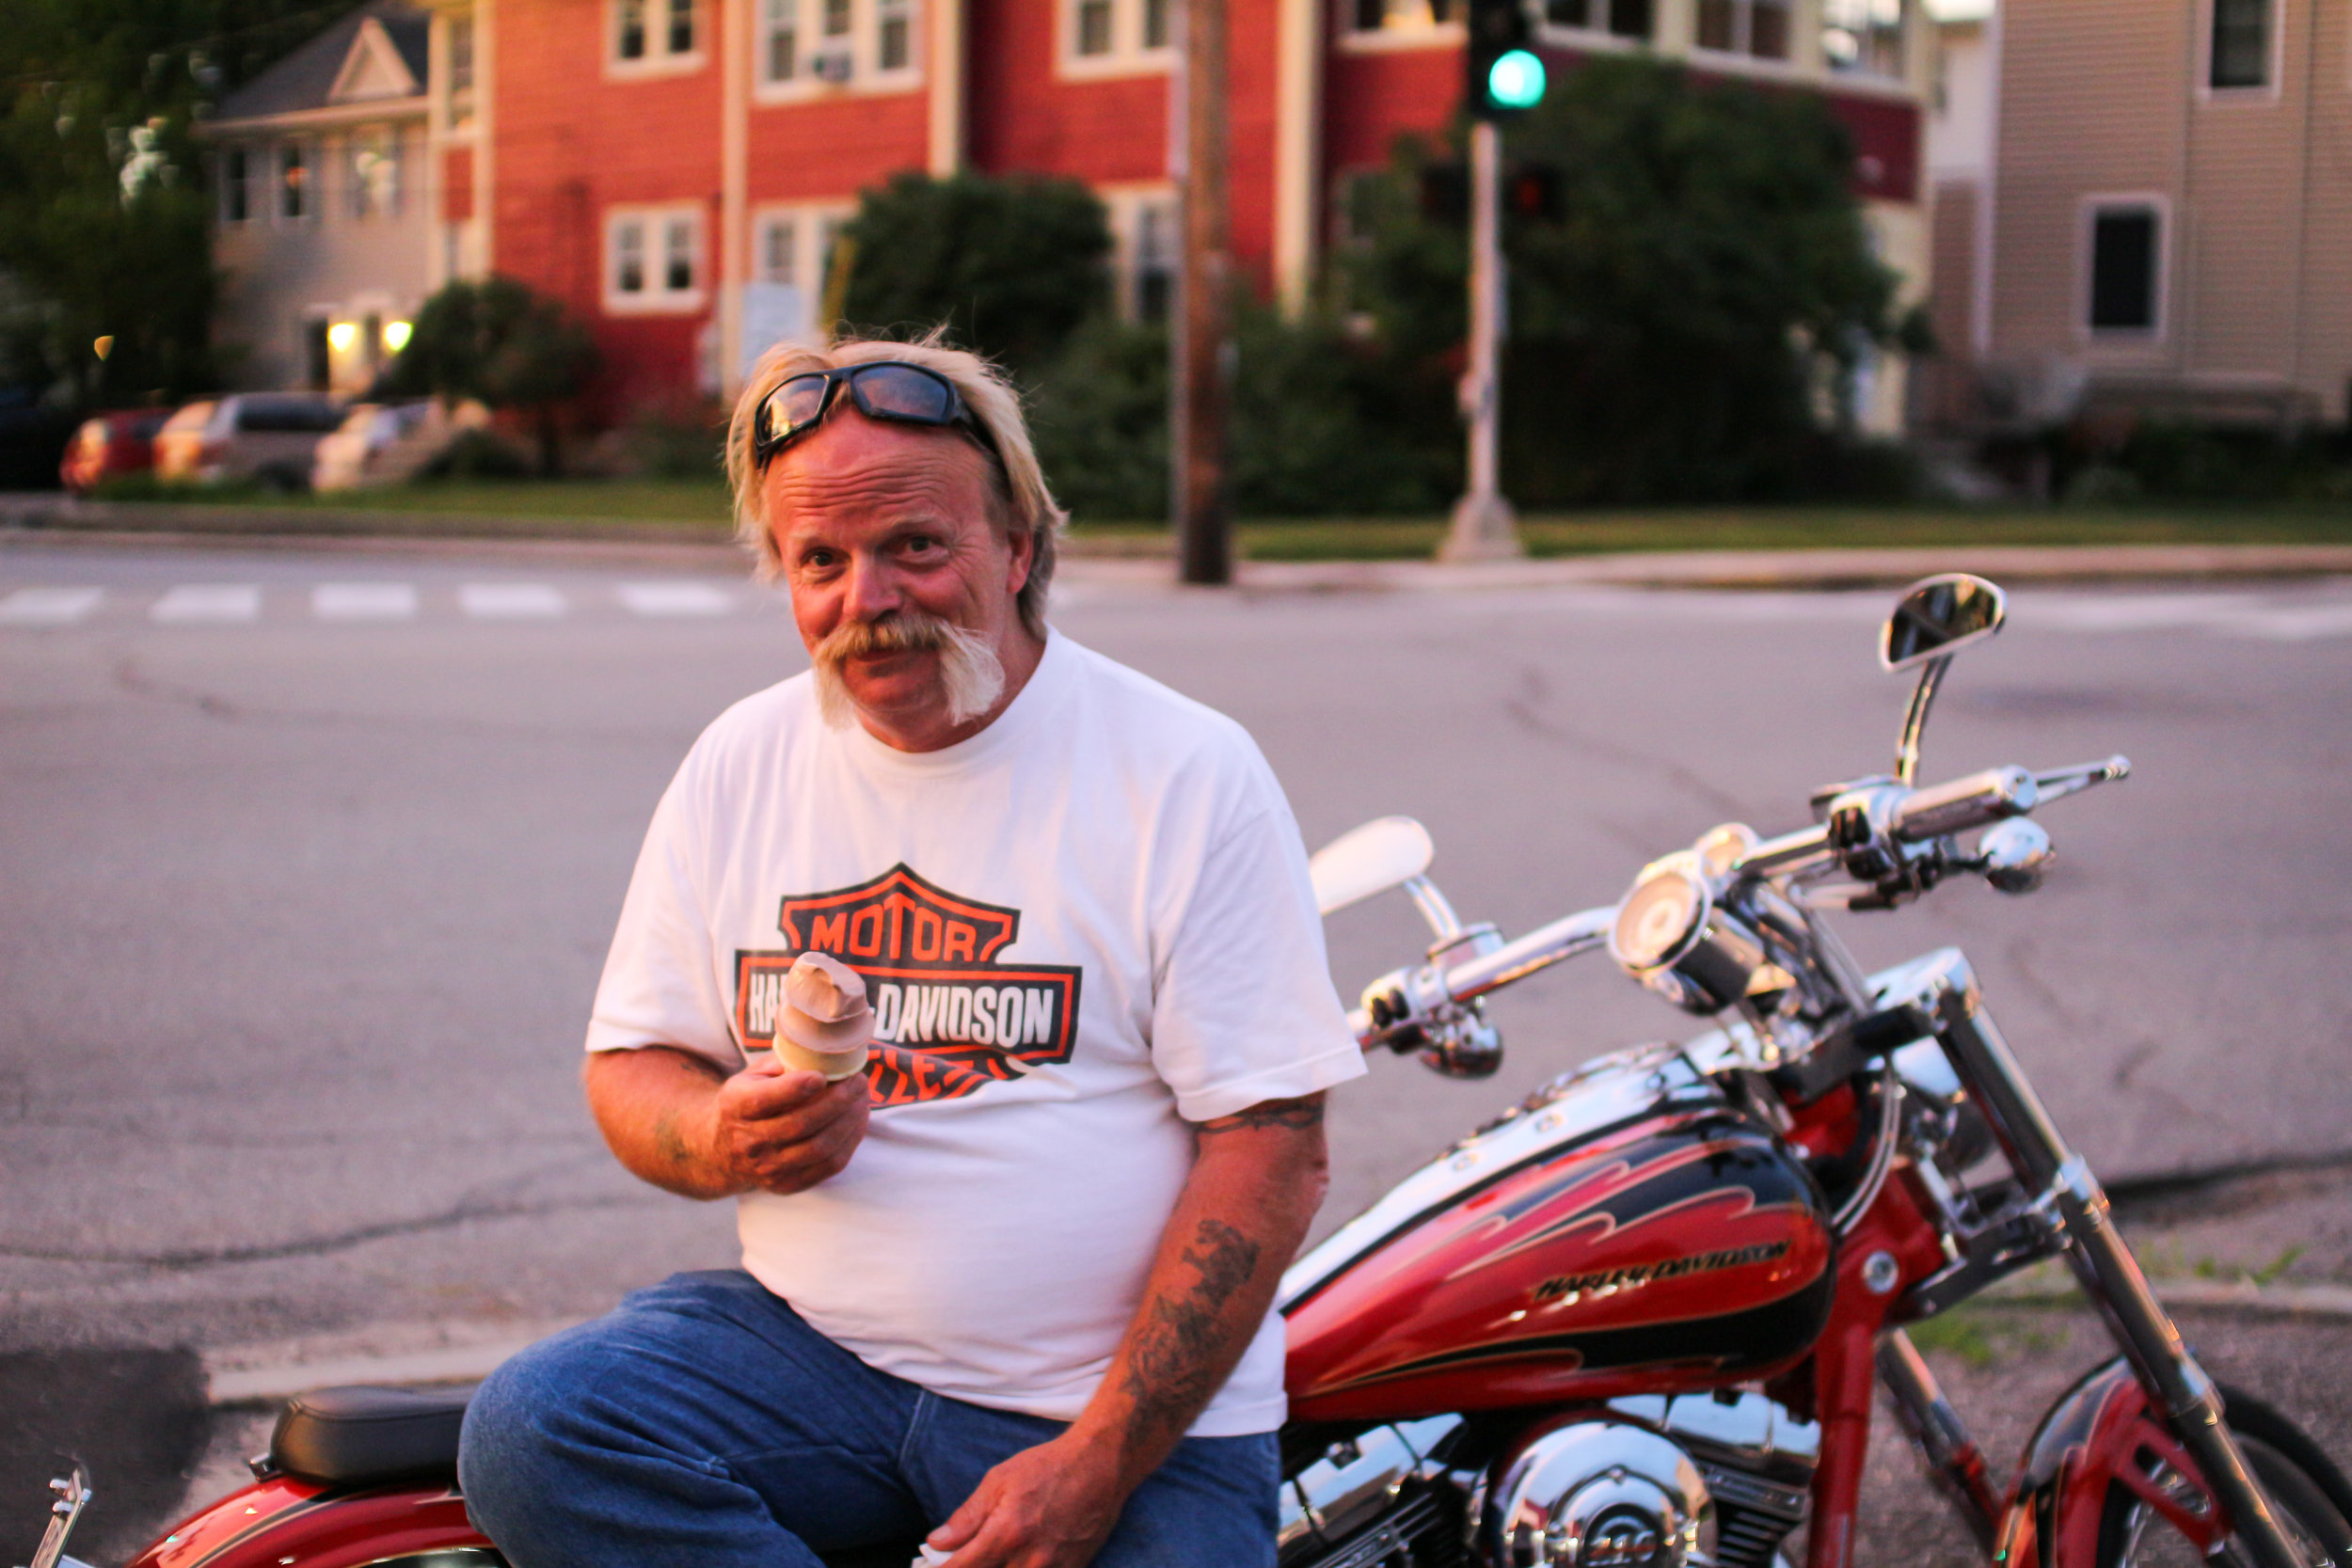 Ron, out for a ride on a beautiful evening stopped by for a cone.